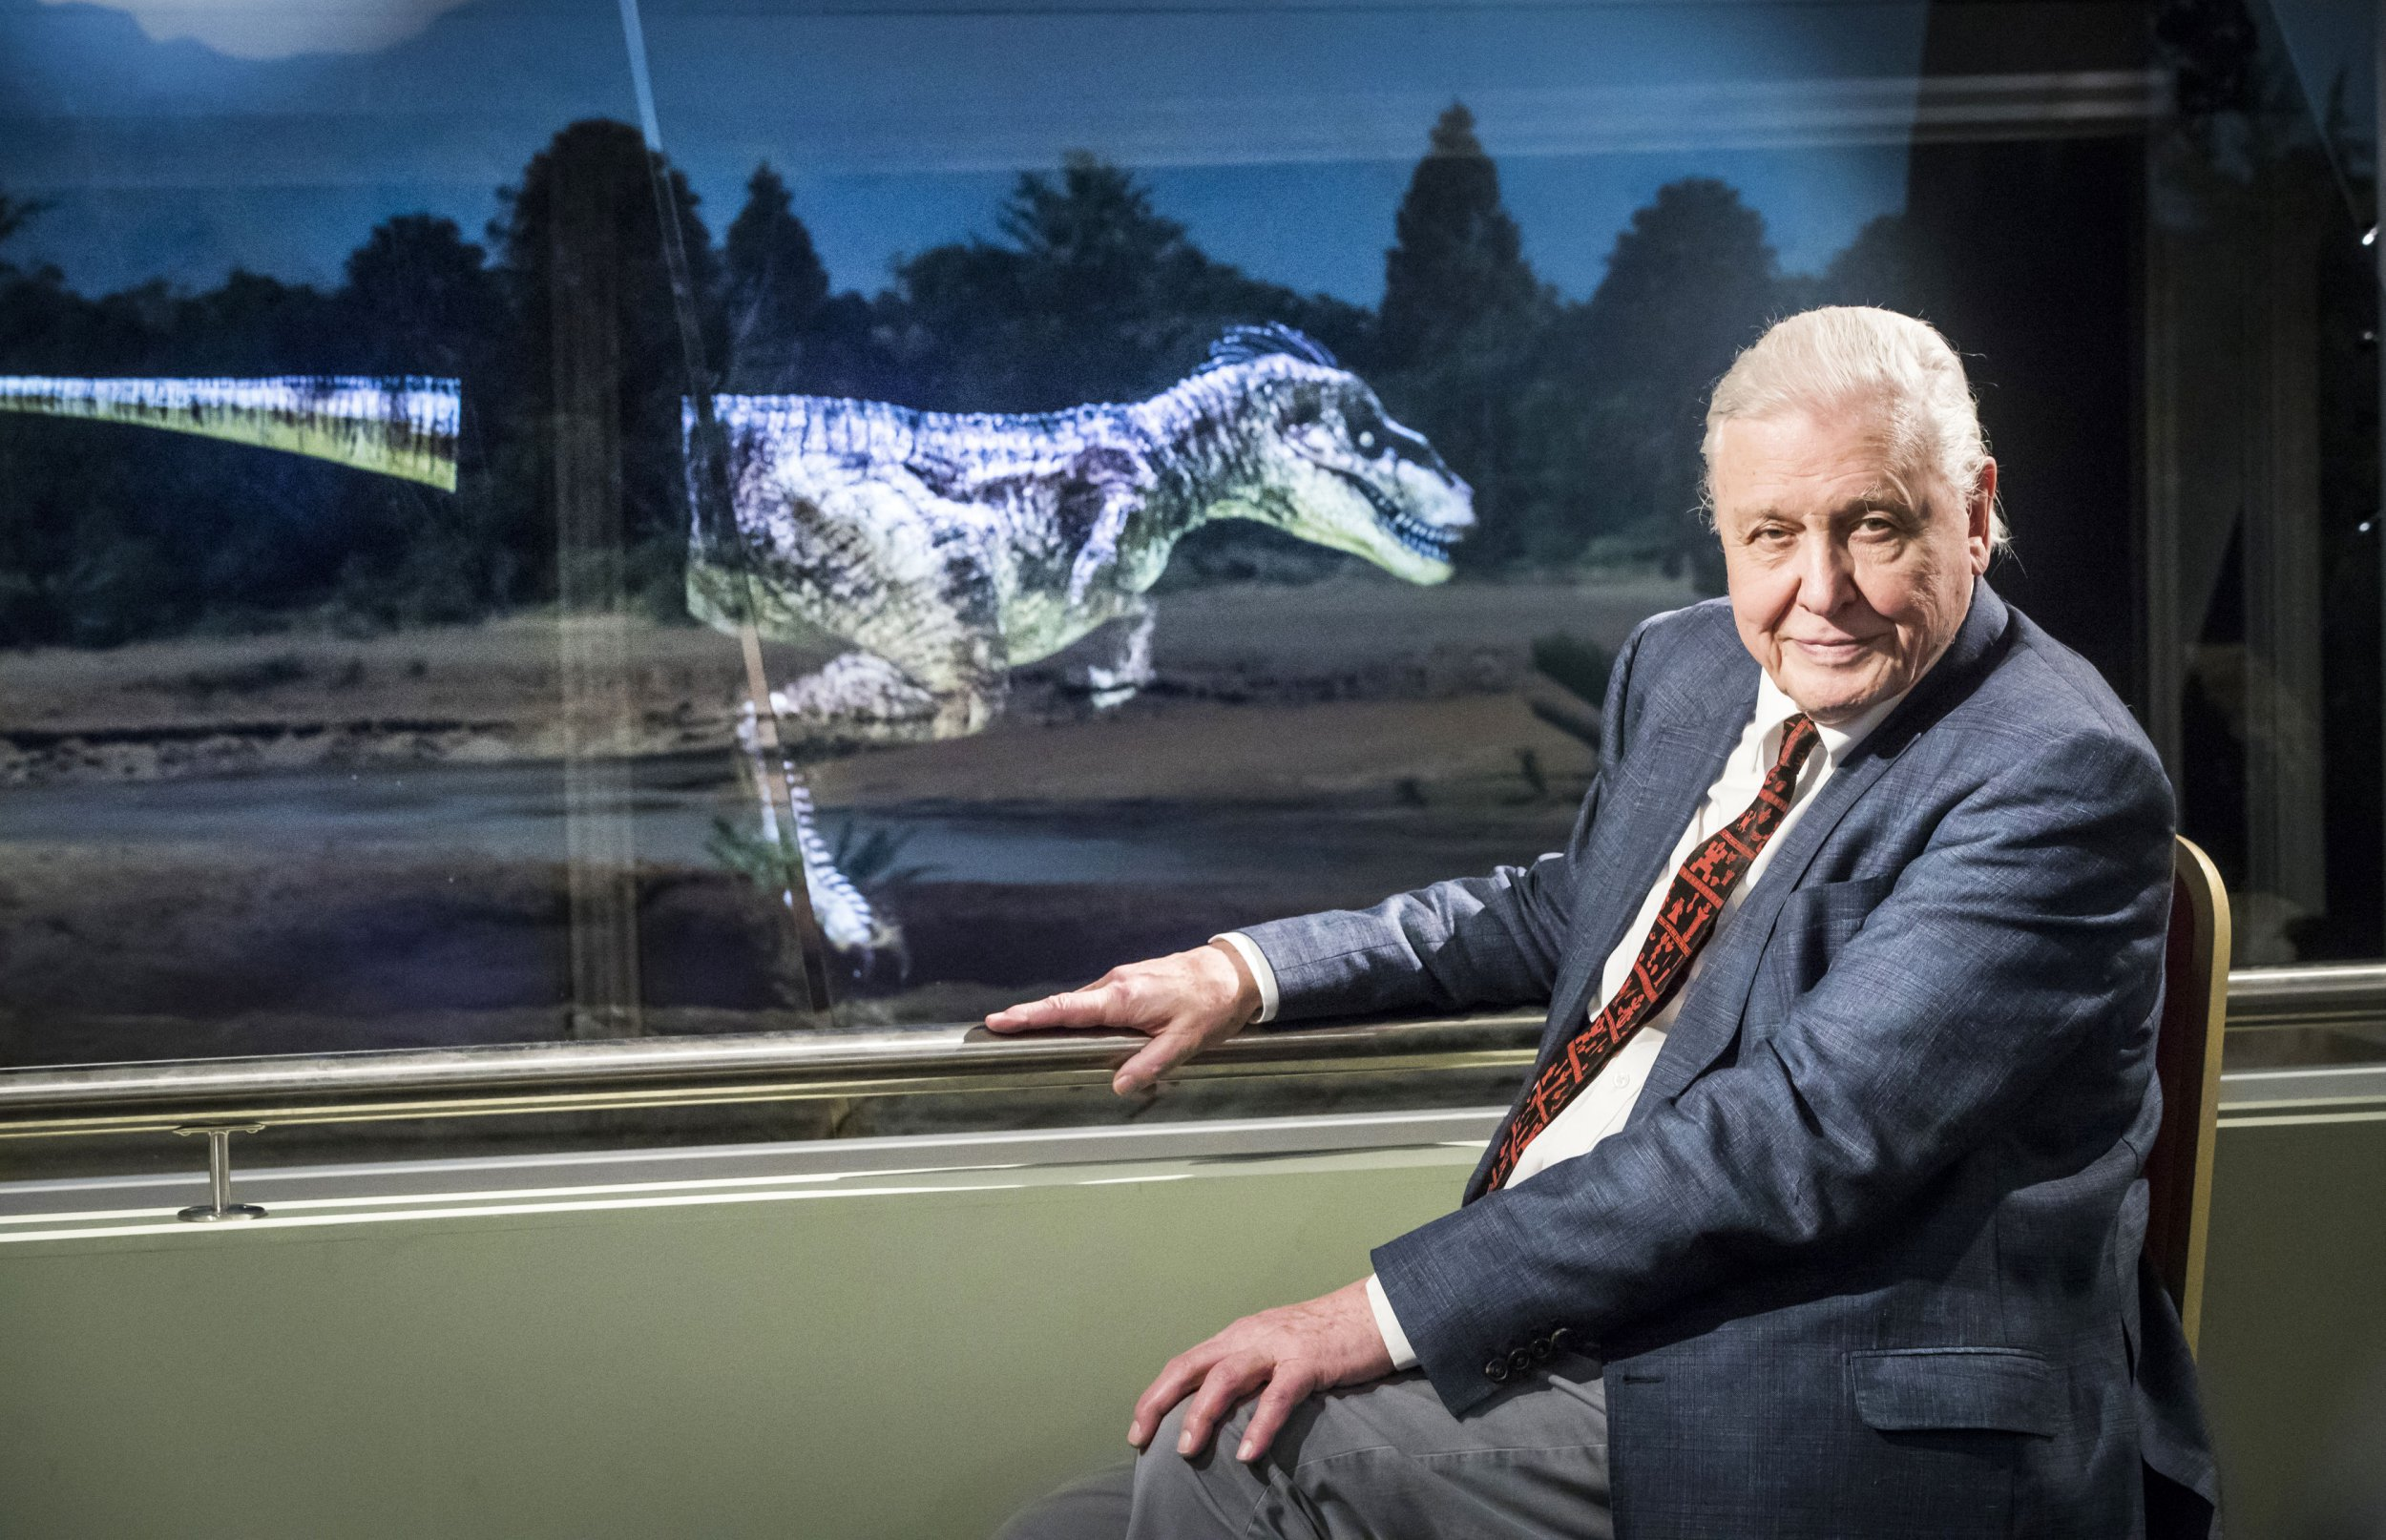 Sir David Attenborough, 91, opens Jurassic World because he's a legend